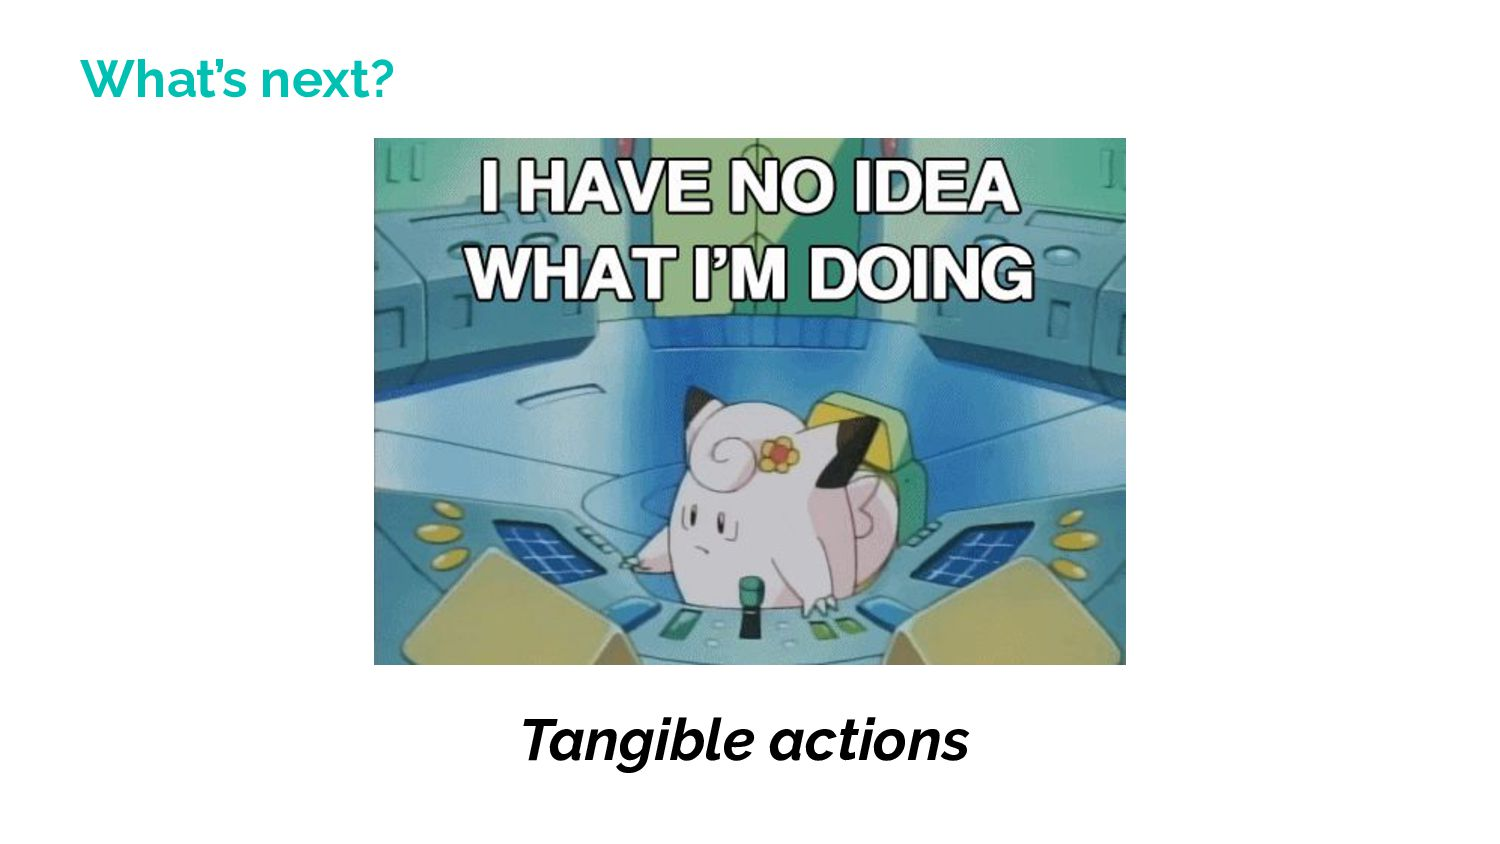 What's next? Tangible actions